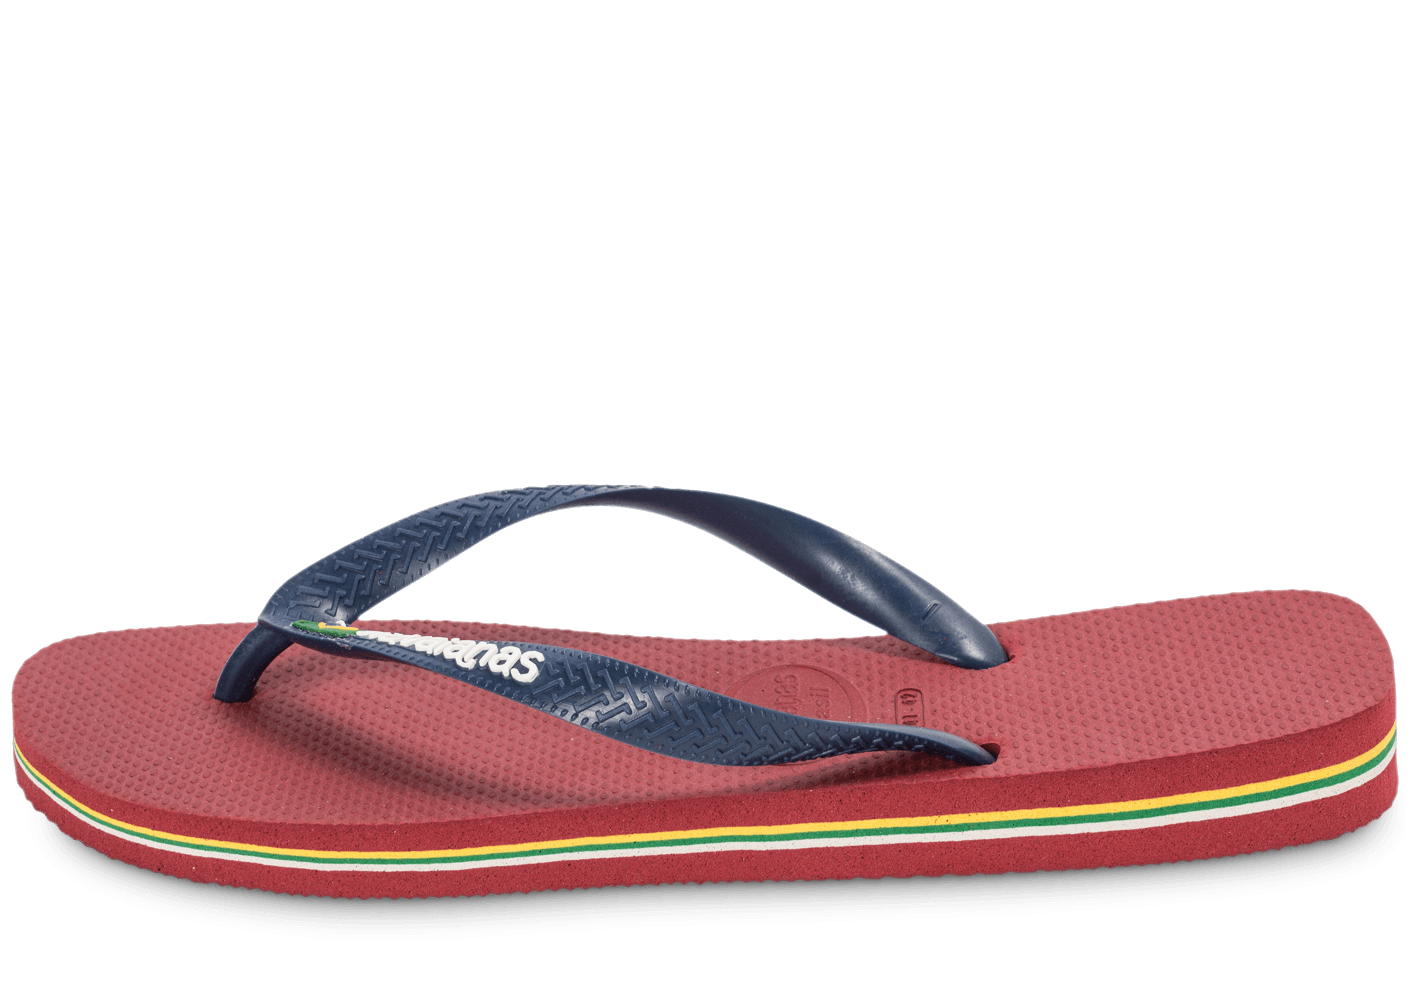 havaianas tongs brasil logo rouge chaussures homme chausport. Black Bedroom Furniture Sets. Home Design Ideas